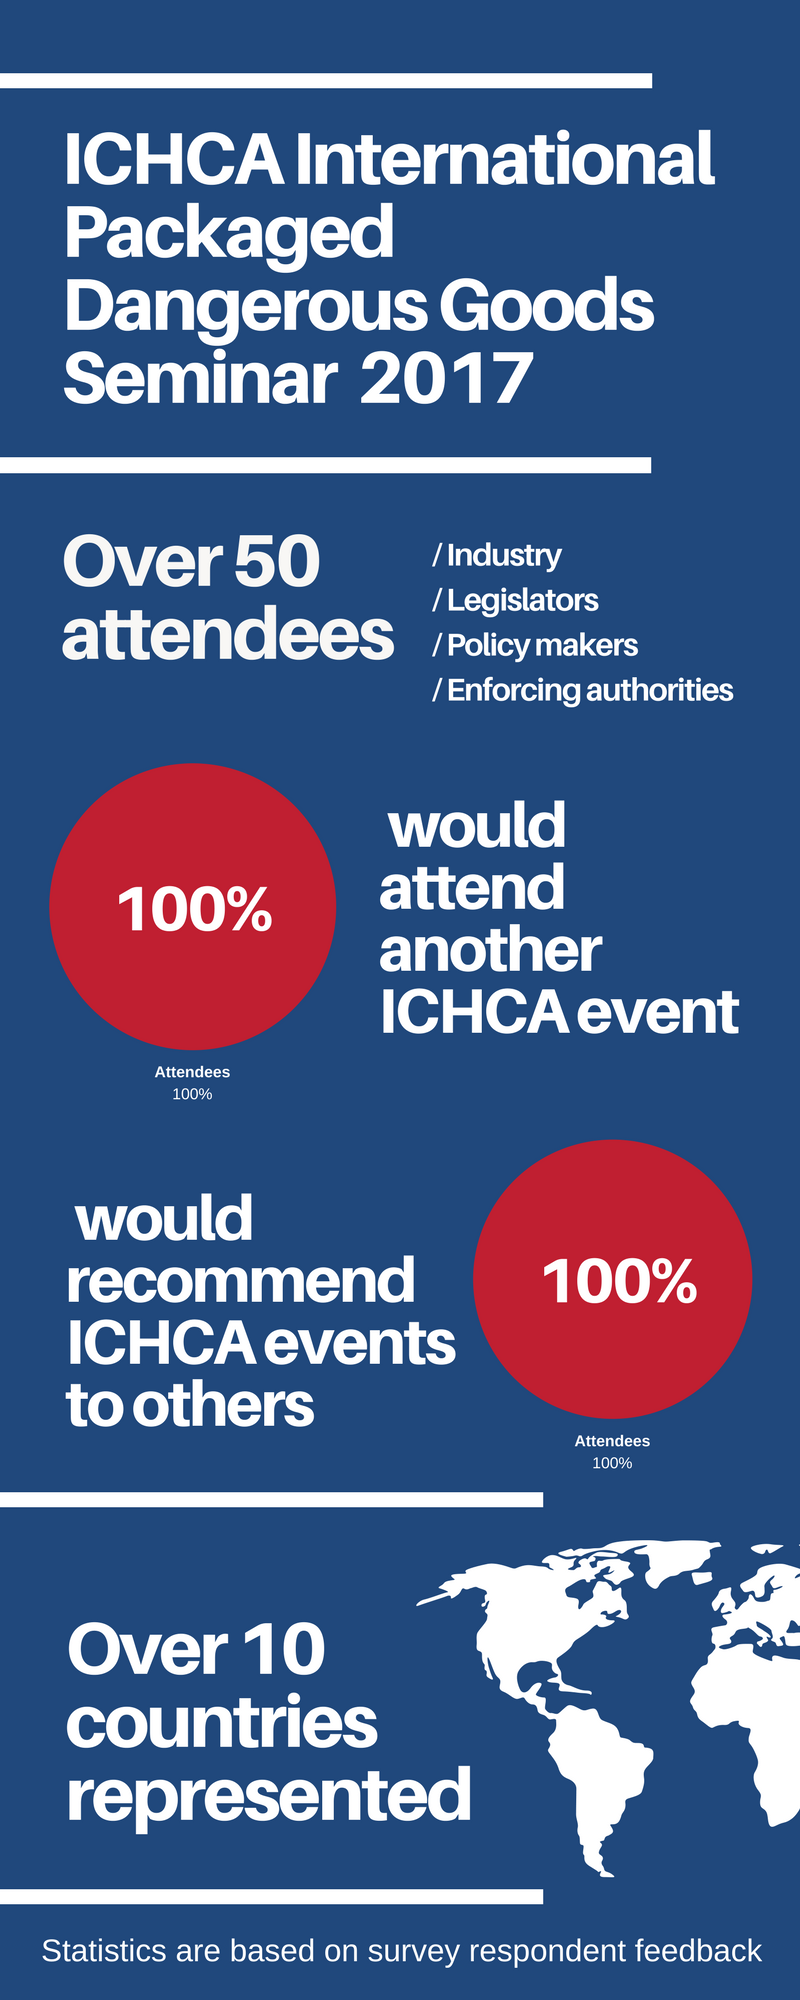 100% of attendees would attend another ICHCA event (8)